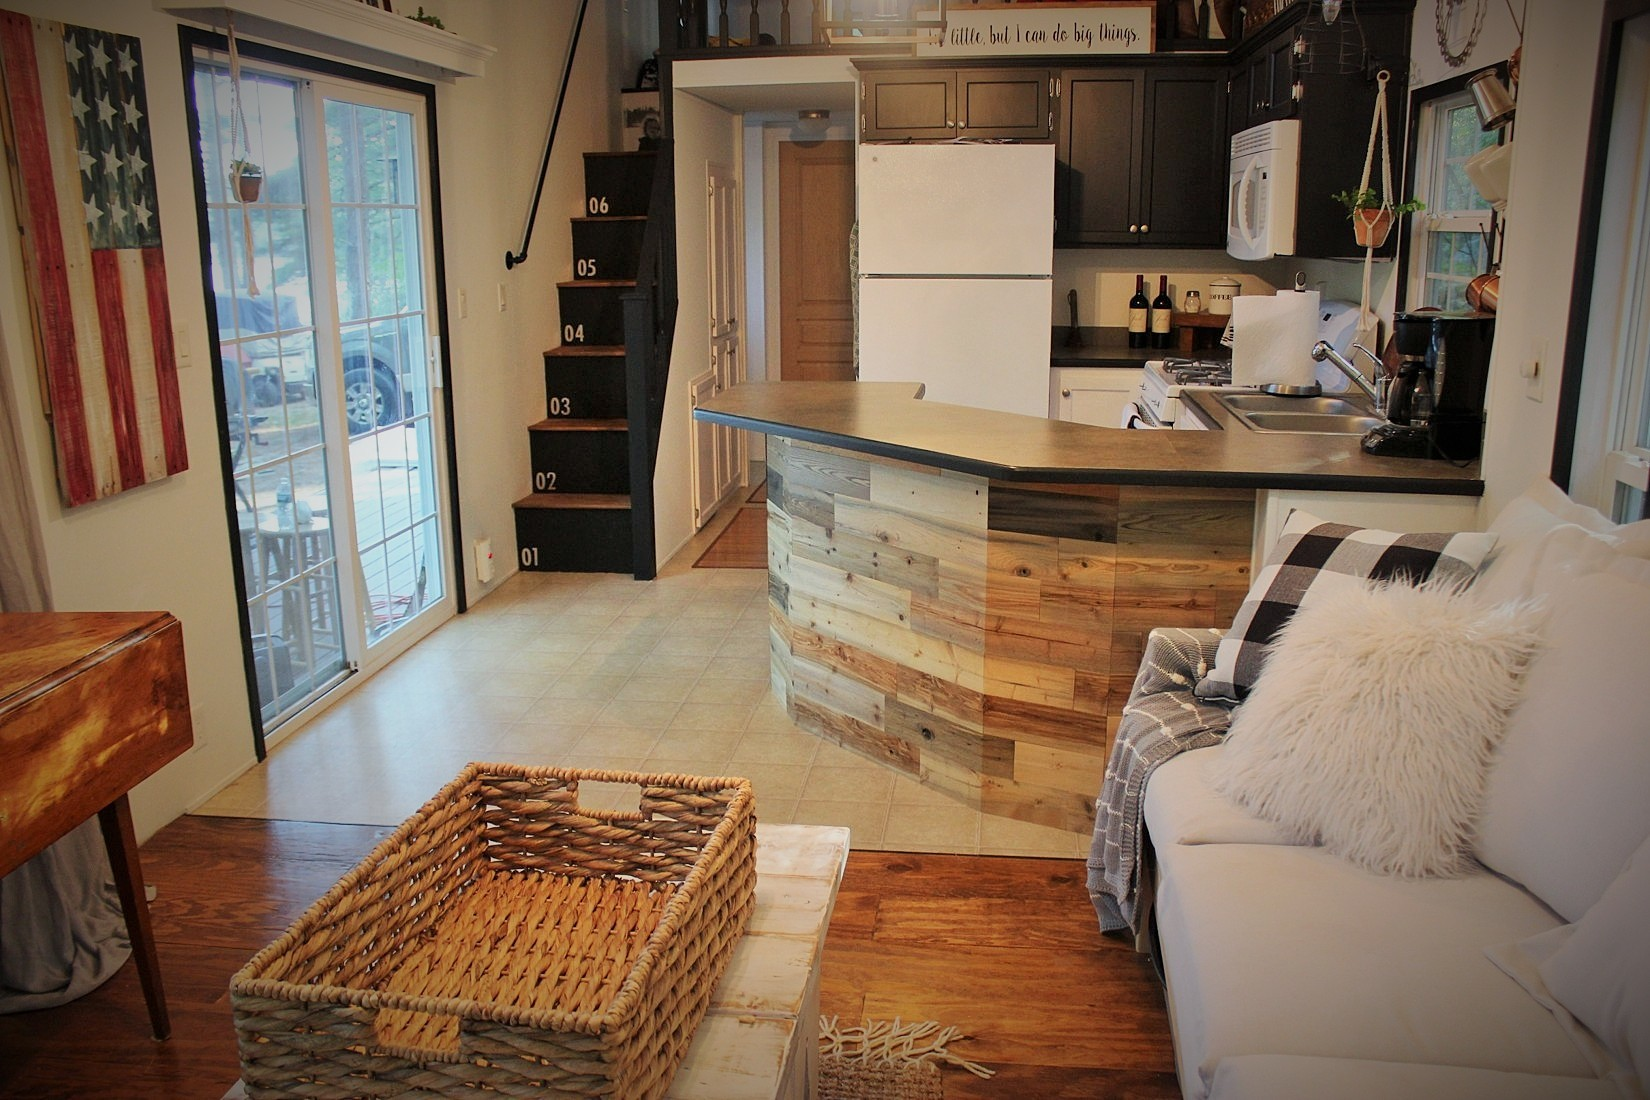 Enamour Stick Wood Updating Tiny House Kitchen Reclaimed Peel Back To Blueberry Tiny House Kitchen Units Tiny House Kitchen List curbed Tiny House Kitchen